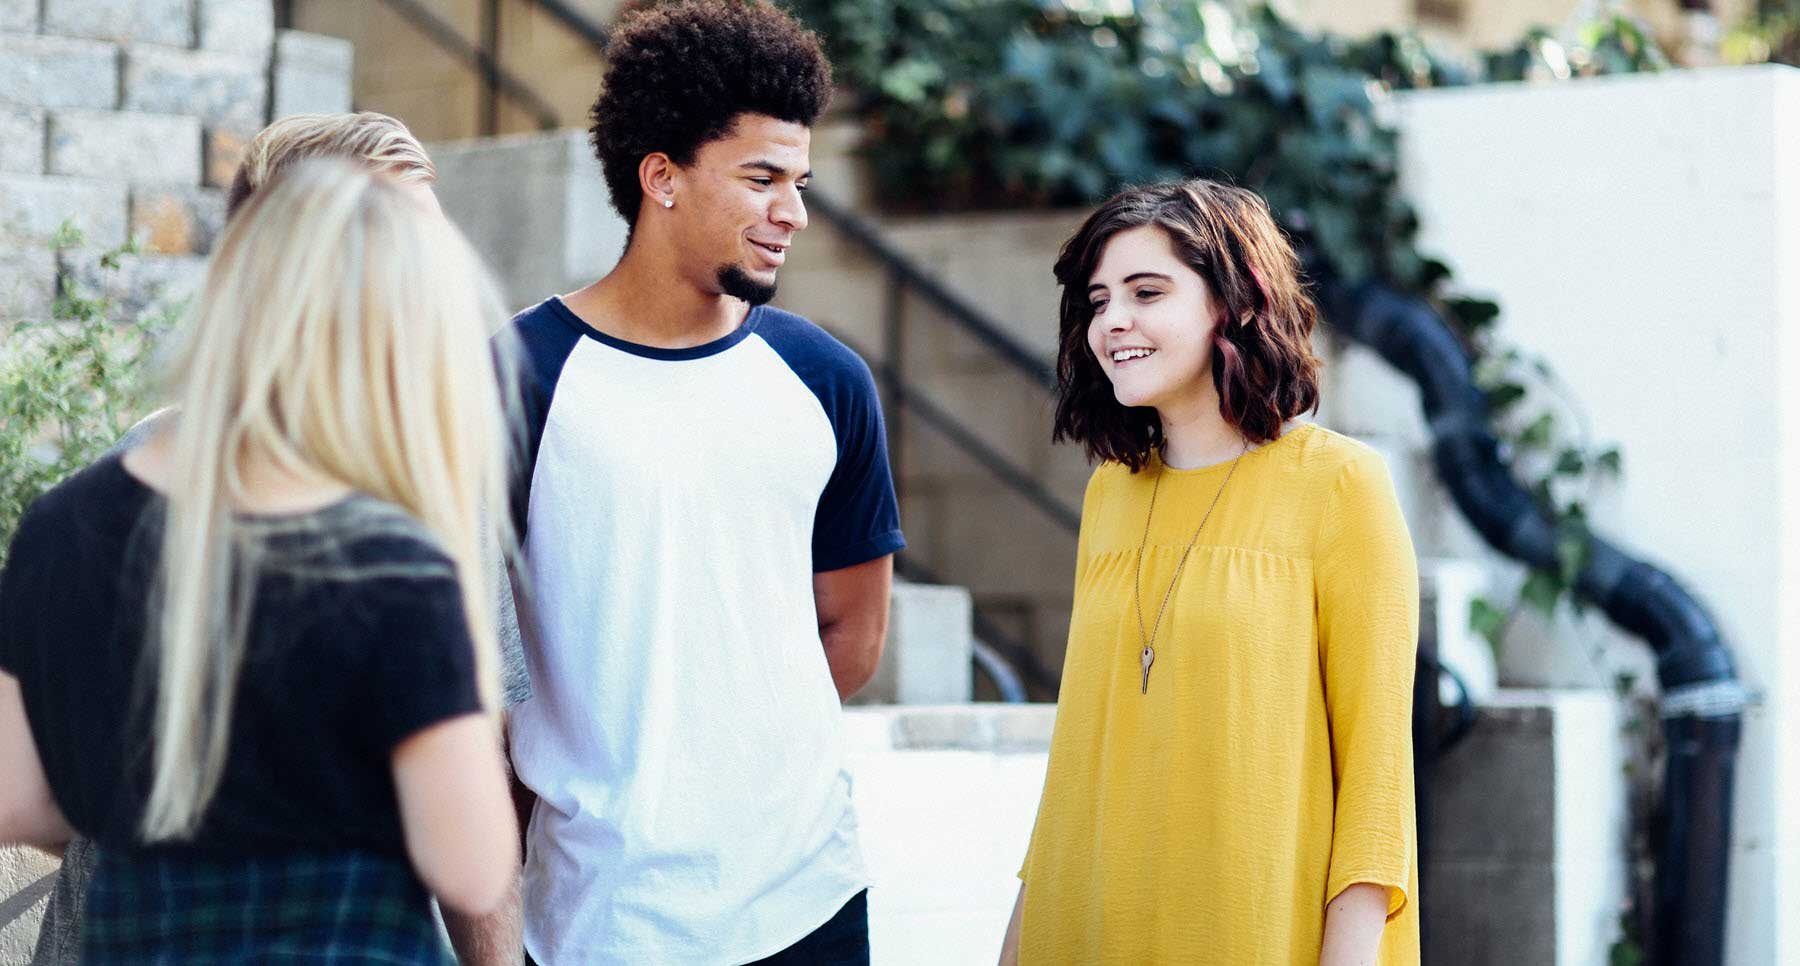 start-the-new-school-year-right-young-adults-outside-talking-about-the-best-school-year-ever